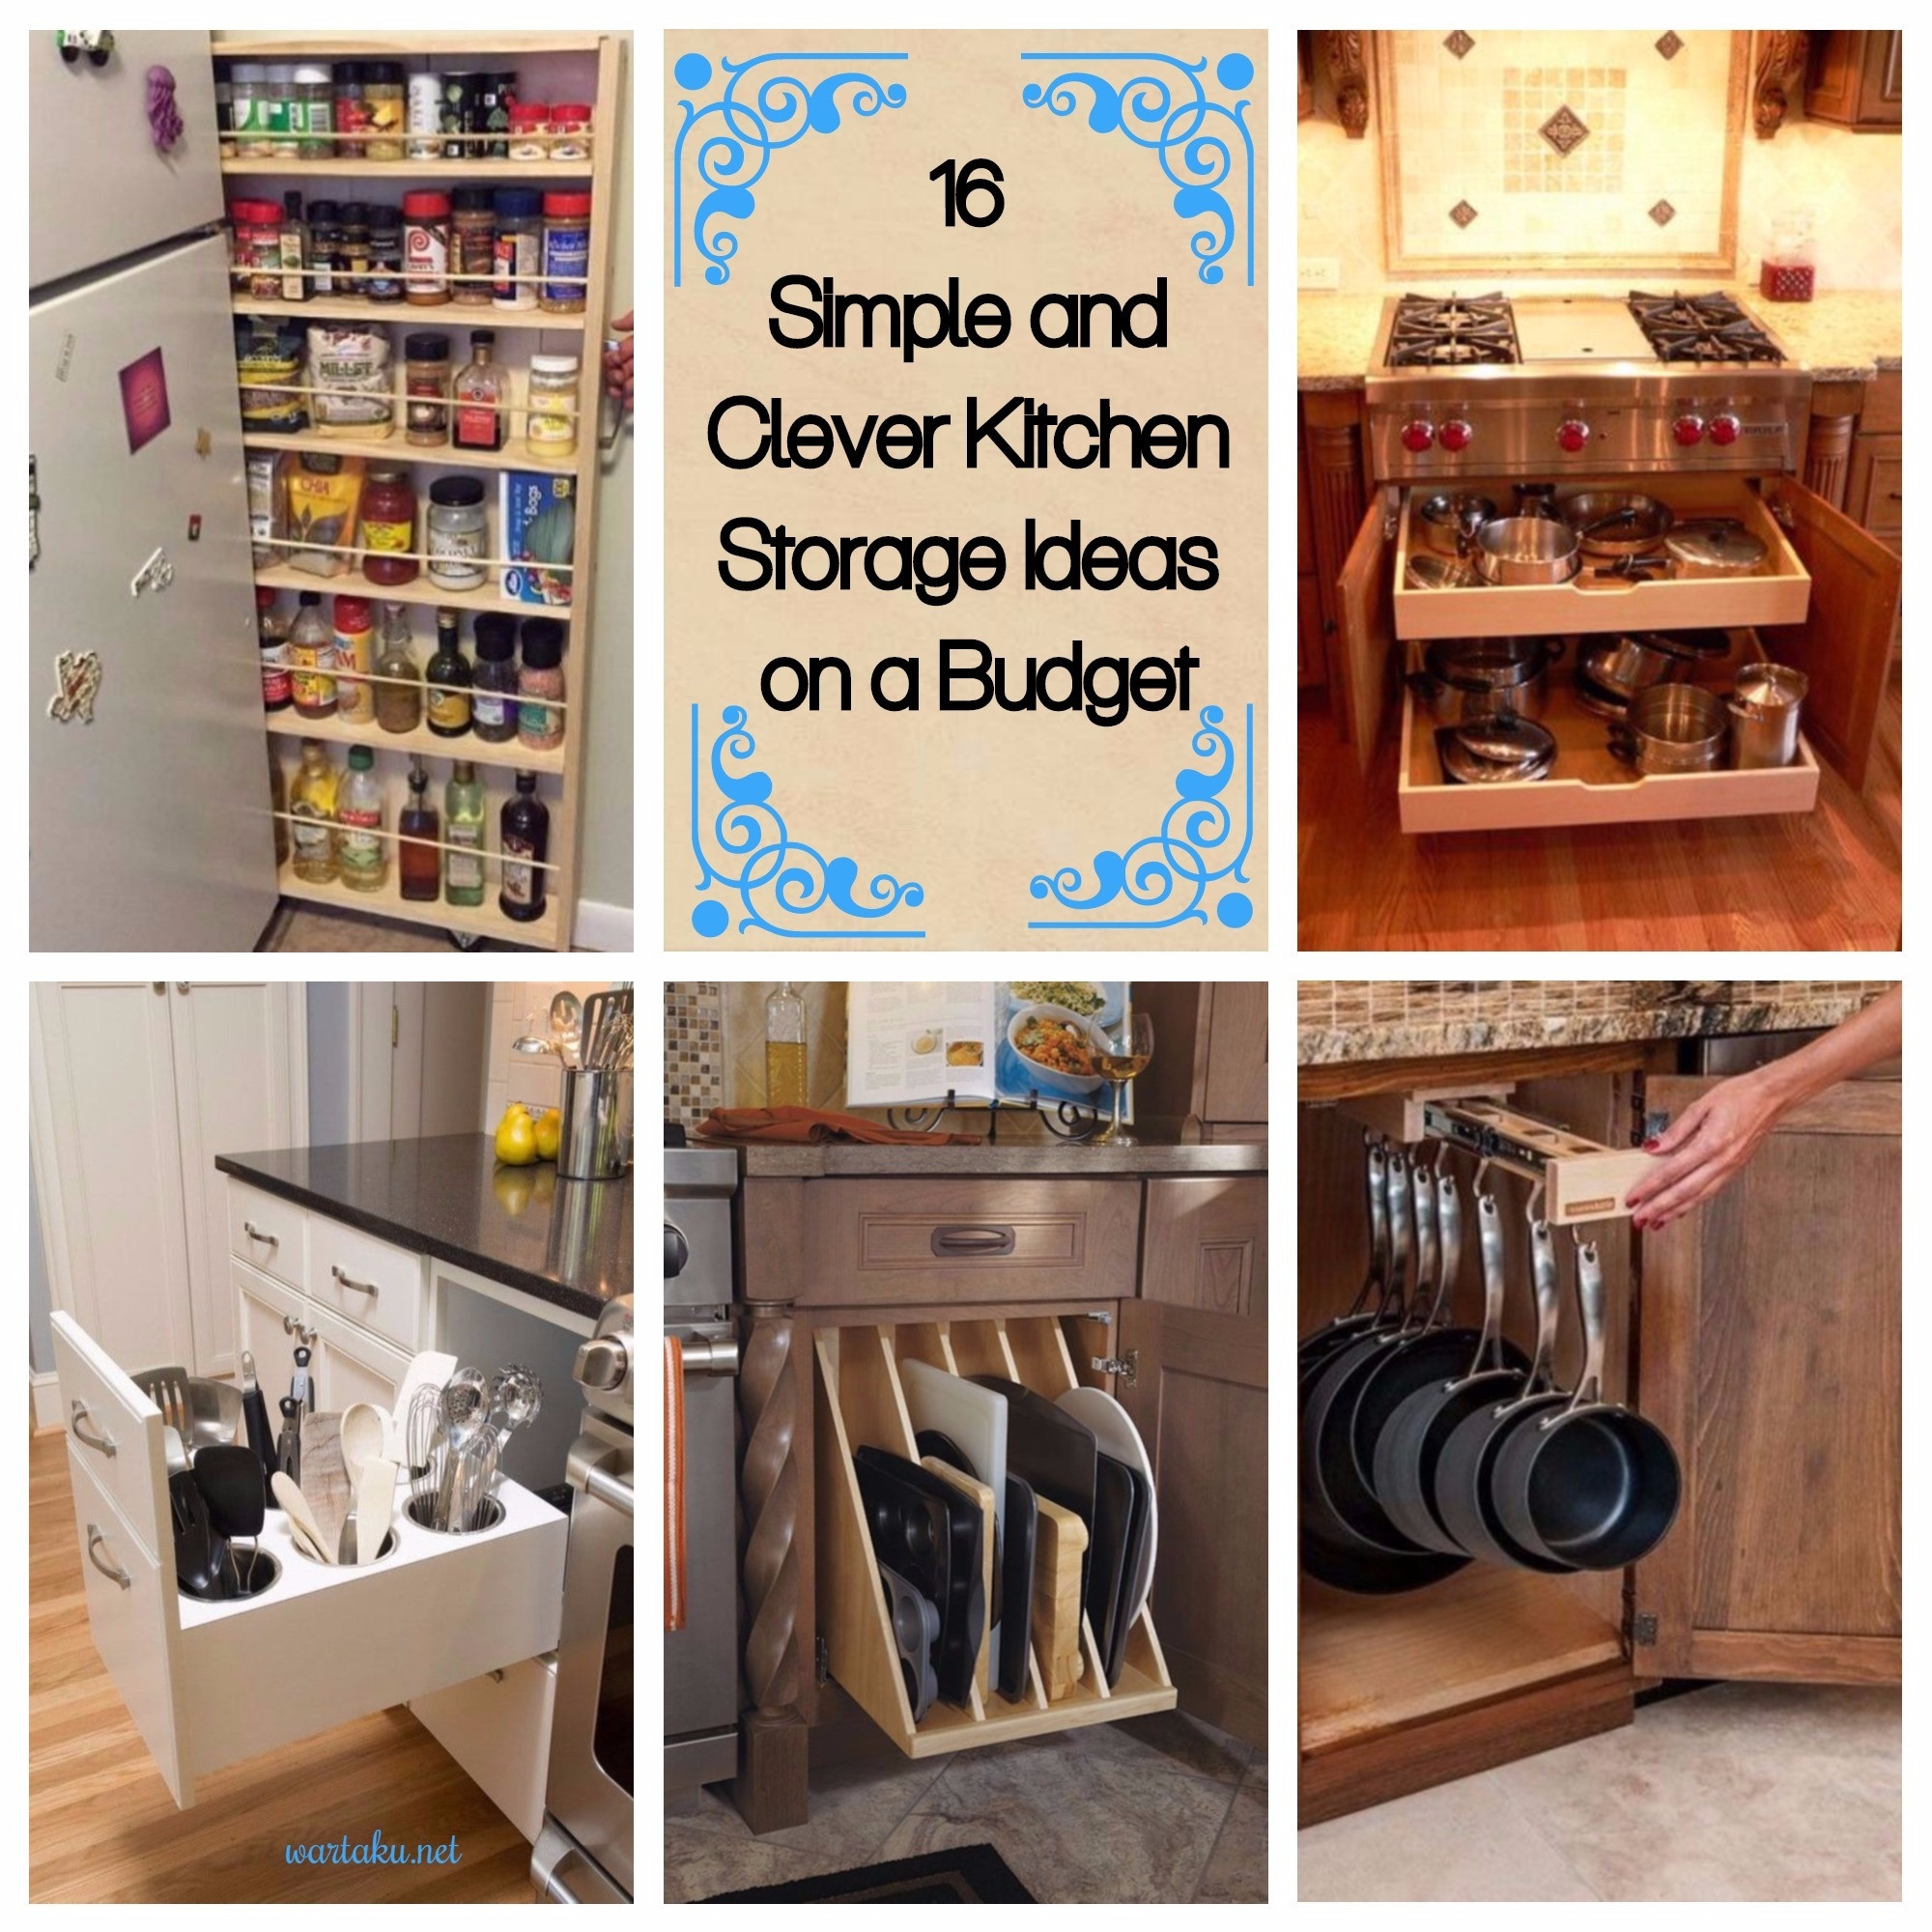 Best ideas about Clever Kitchen Ideas . Save or Pin 16 Simple and Clever Kitchen Storage Ideas on a Bud Now.